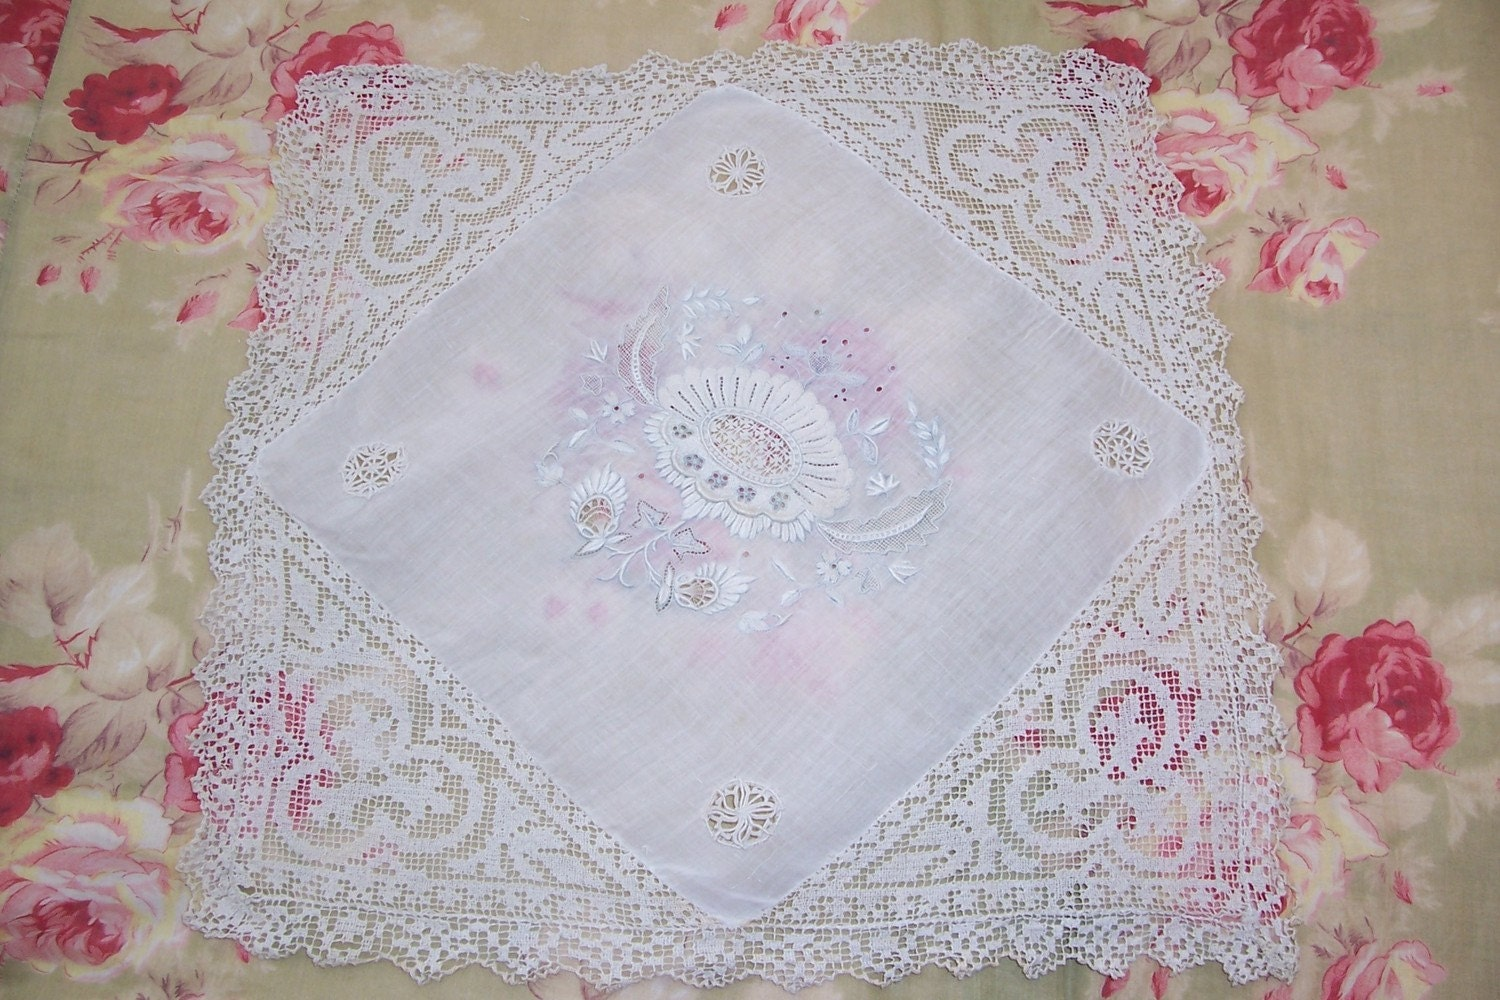 EXQUISITE VICTORIAN WEDDING HANDKERCHIEFLACE and SILK EMBROIDERY FLOWERS